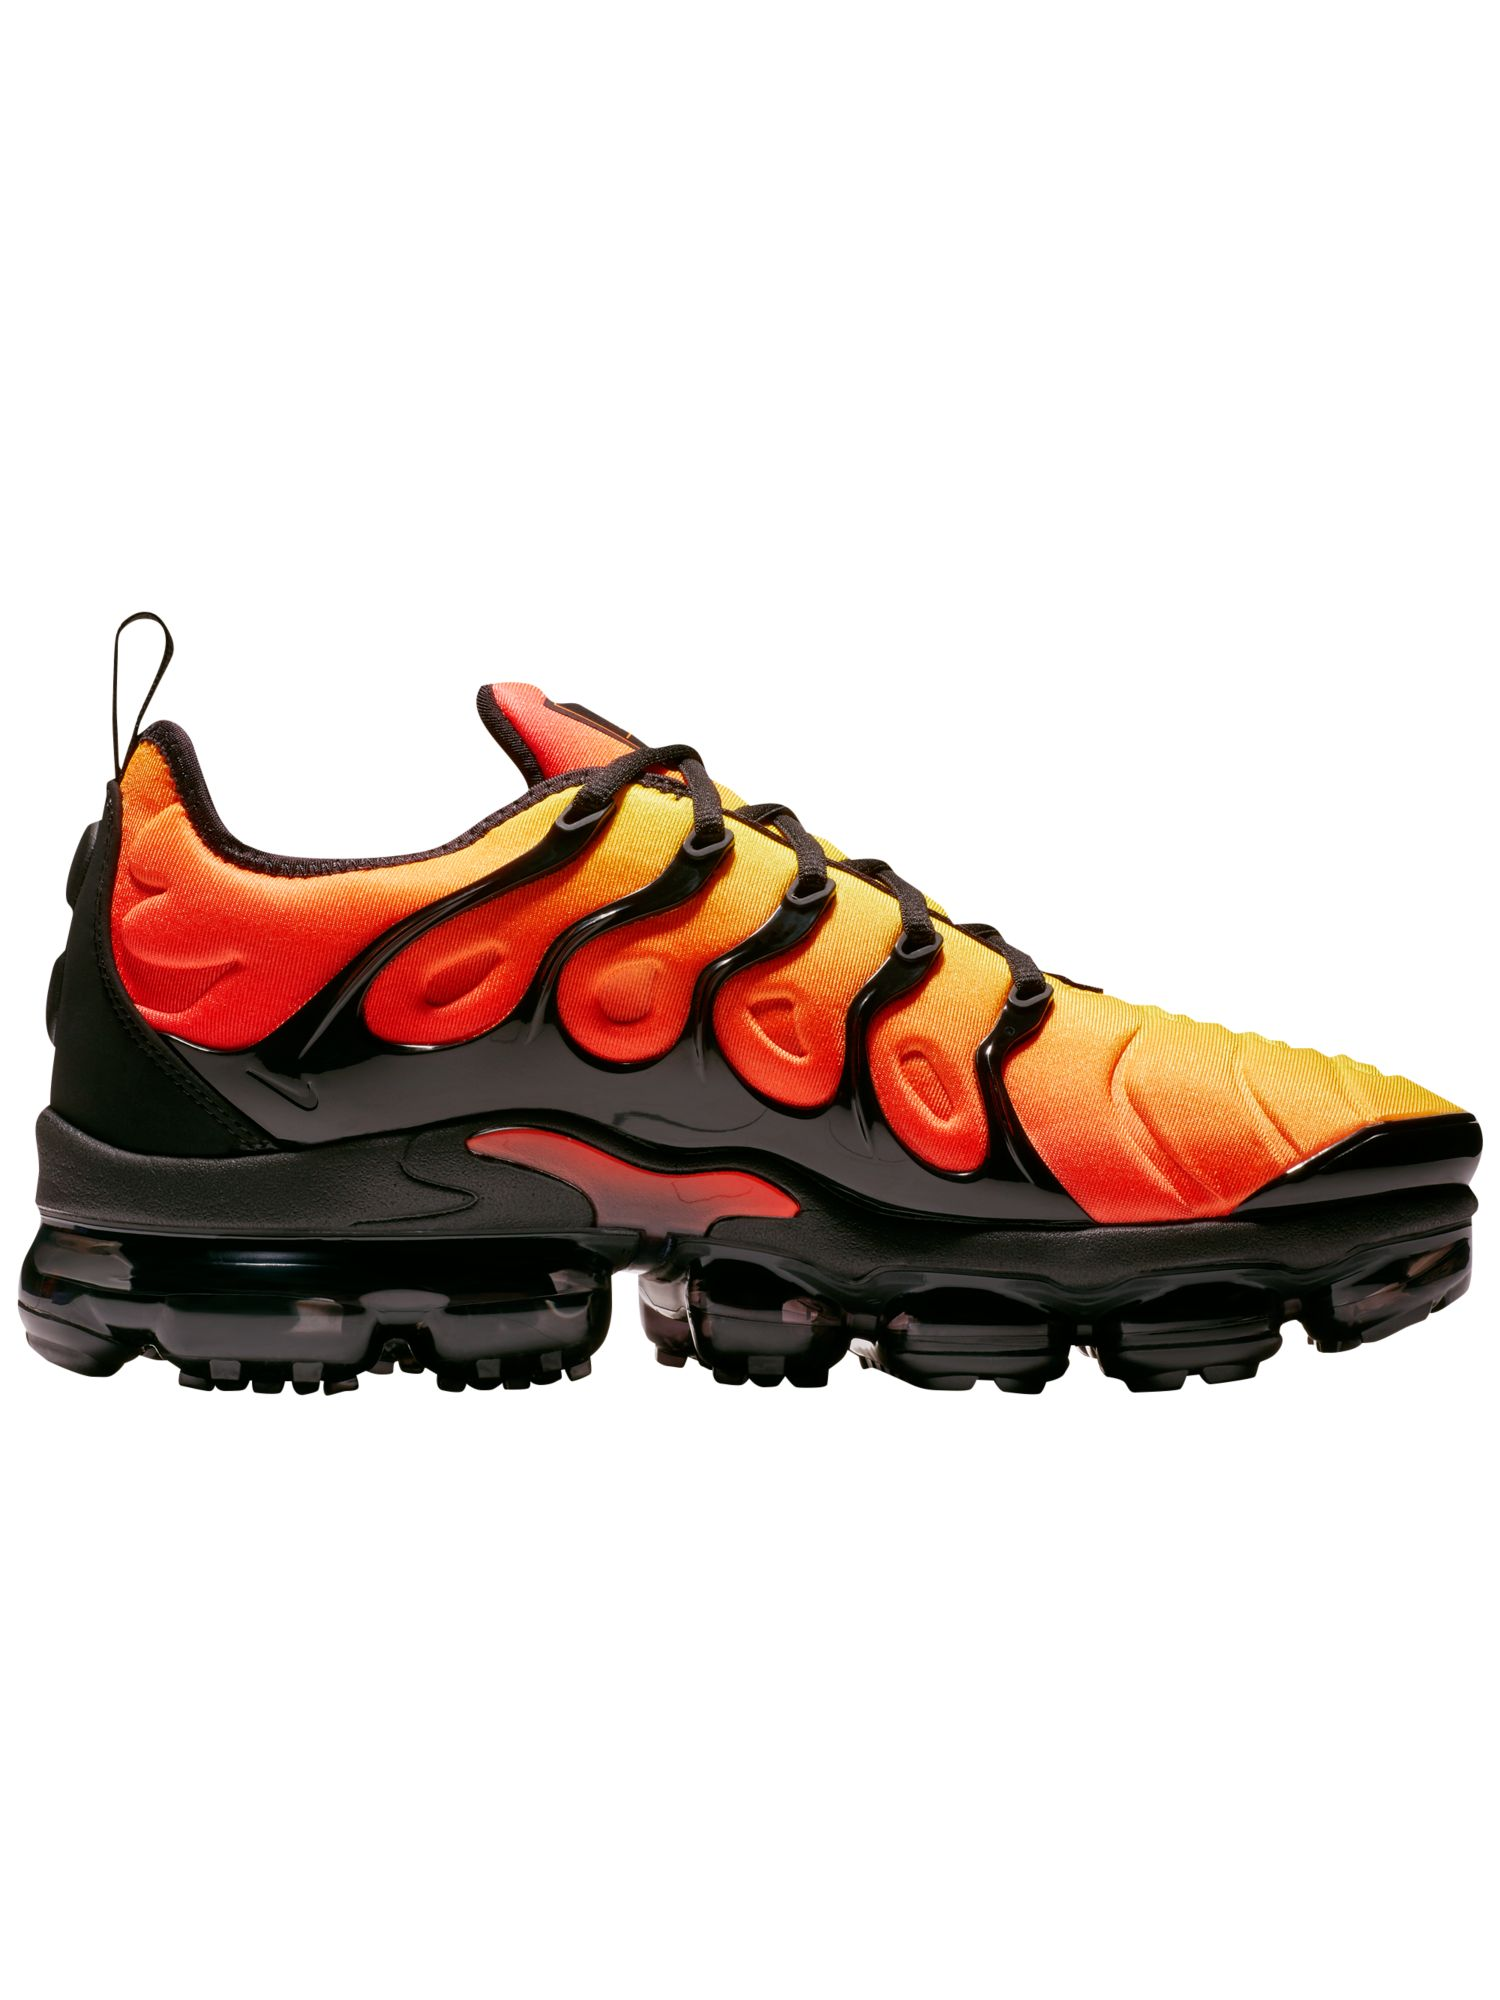 on sale 5da40 ce366 shop nike air max 90 atmos size 9.5 new 1210f f033e  promo code for nike air  vapormax plus mens running shoes black black total orange total crimson